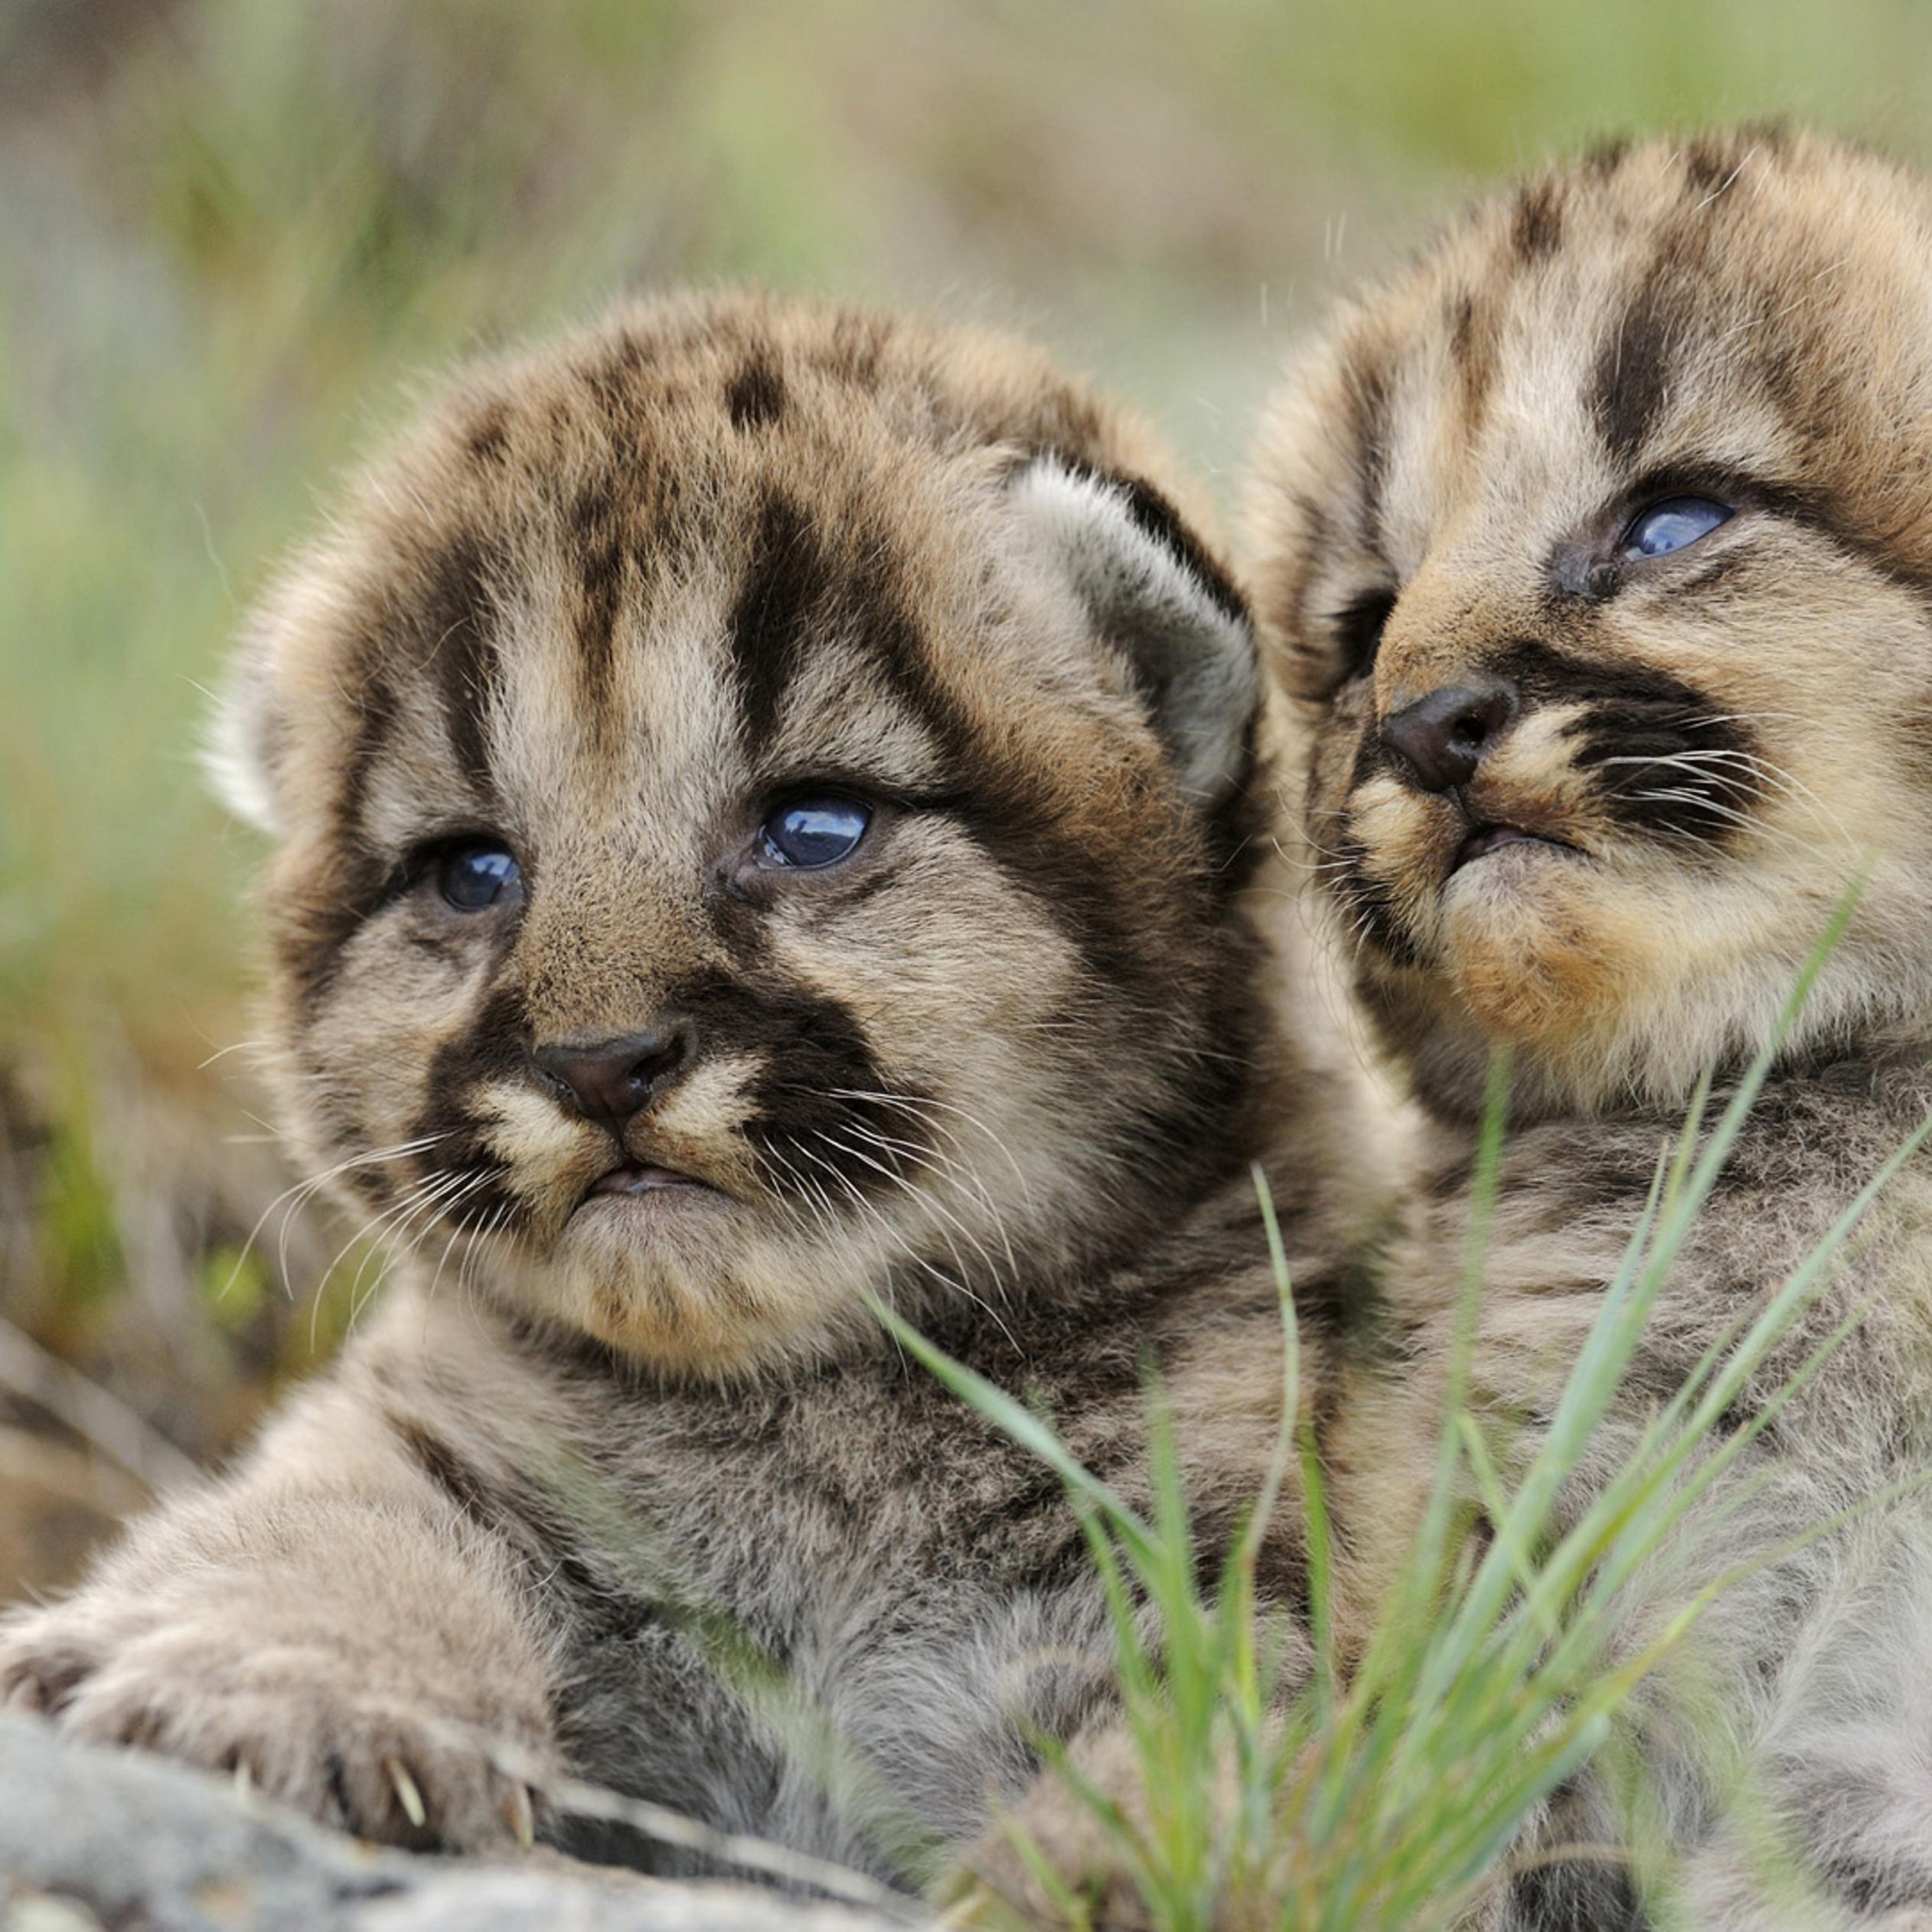 Two Amazing Baby Animals Hd Wallpaper